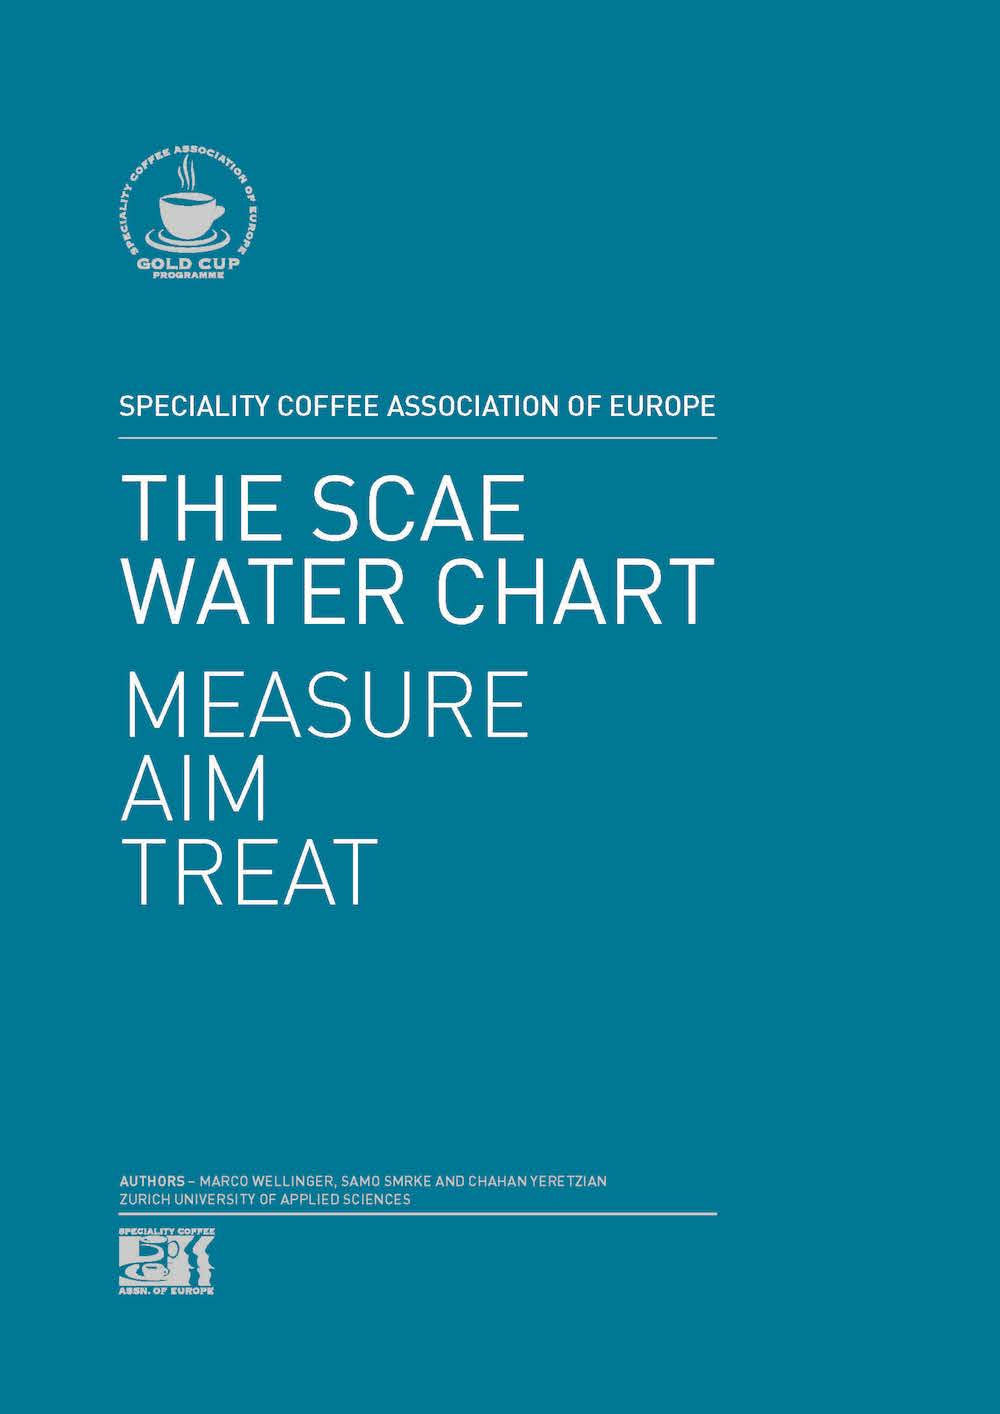 The SCAE Water Chart  The new SCAE Water Chart establishes a solid framework for a unified and transparent discussion of water for coffee. The centre of this discussion revolves around the two axes alkalinity and total hardness. We have presented this booklet in order to promote a spirited exchange of ideas about the water we use for brewing within the speciality coffee community.   Member Access